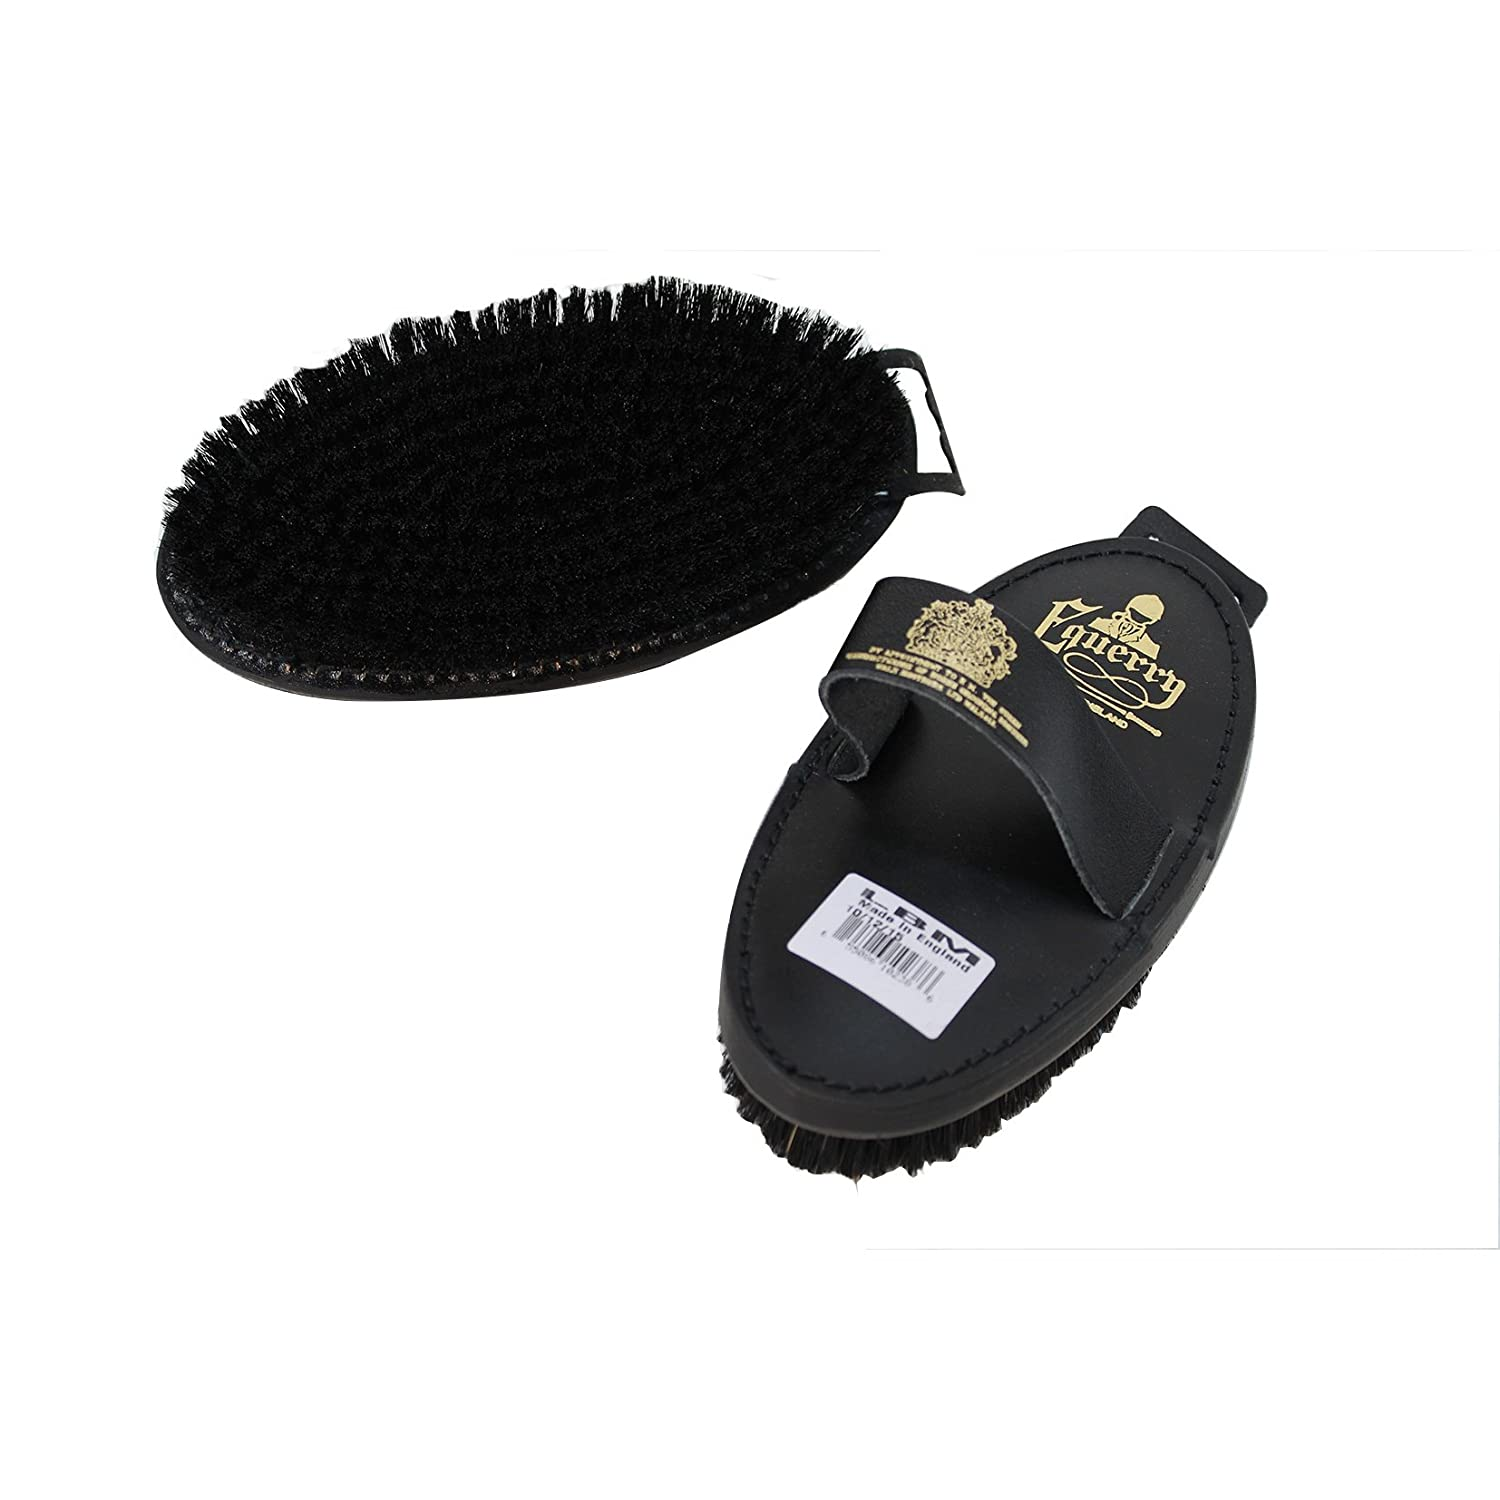 May Vary One Size May Vary One Size Equerry Natural Bristle Leather Body Brush (One Size) (May Vary)